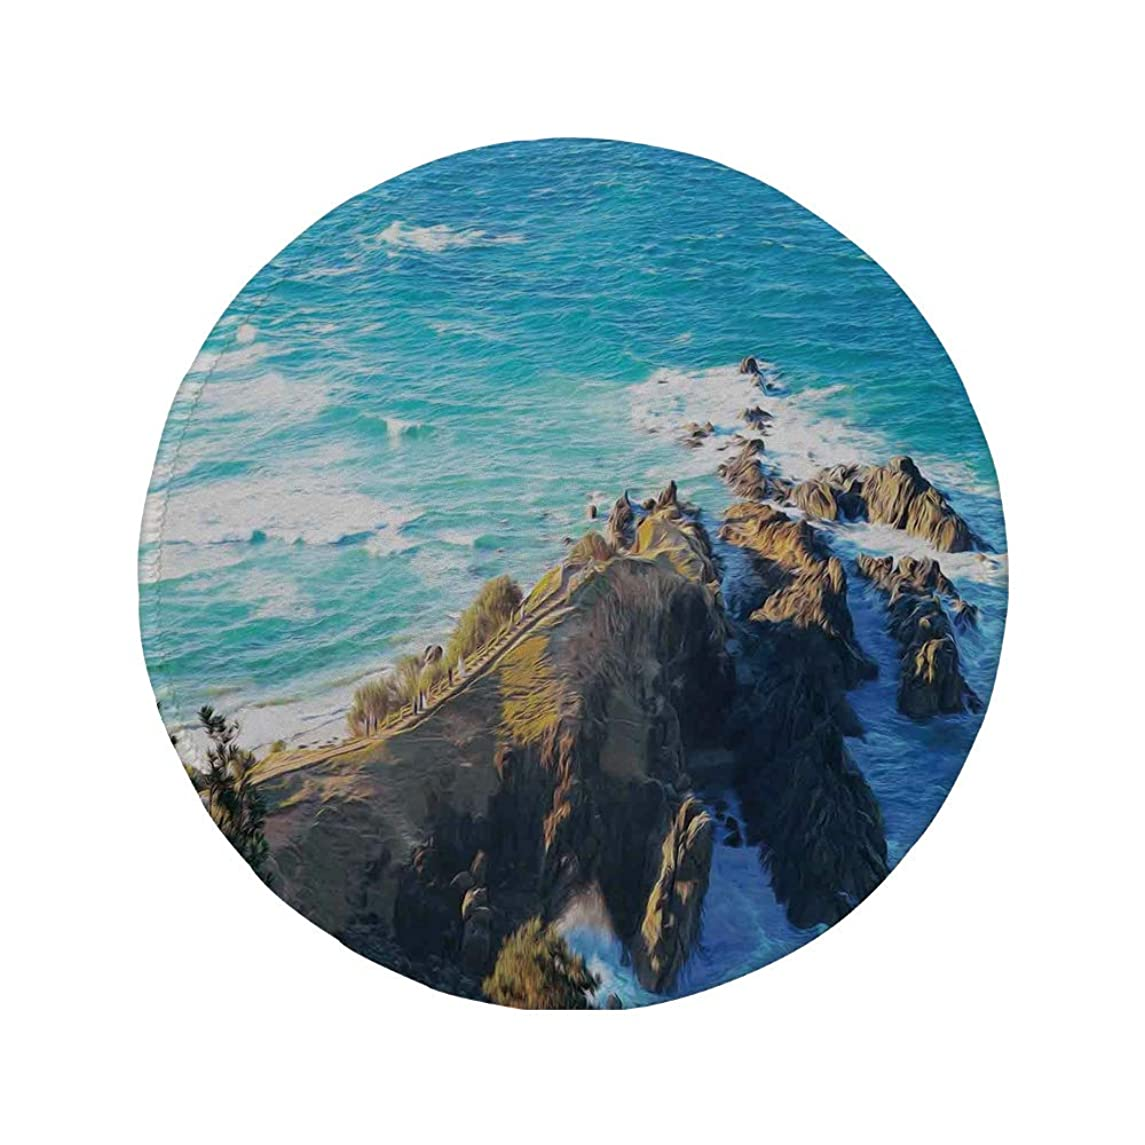 Non-Slip Rubber Round Mouse Pad,Country Decor,Aerial View of Australien Cliffs by The Sea with Waves Scary High Destination of Nature,Navy Brown,11.8